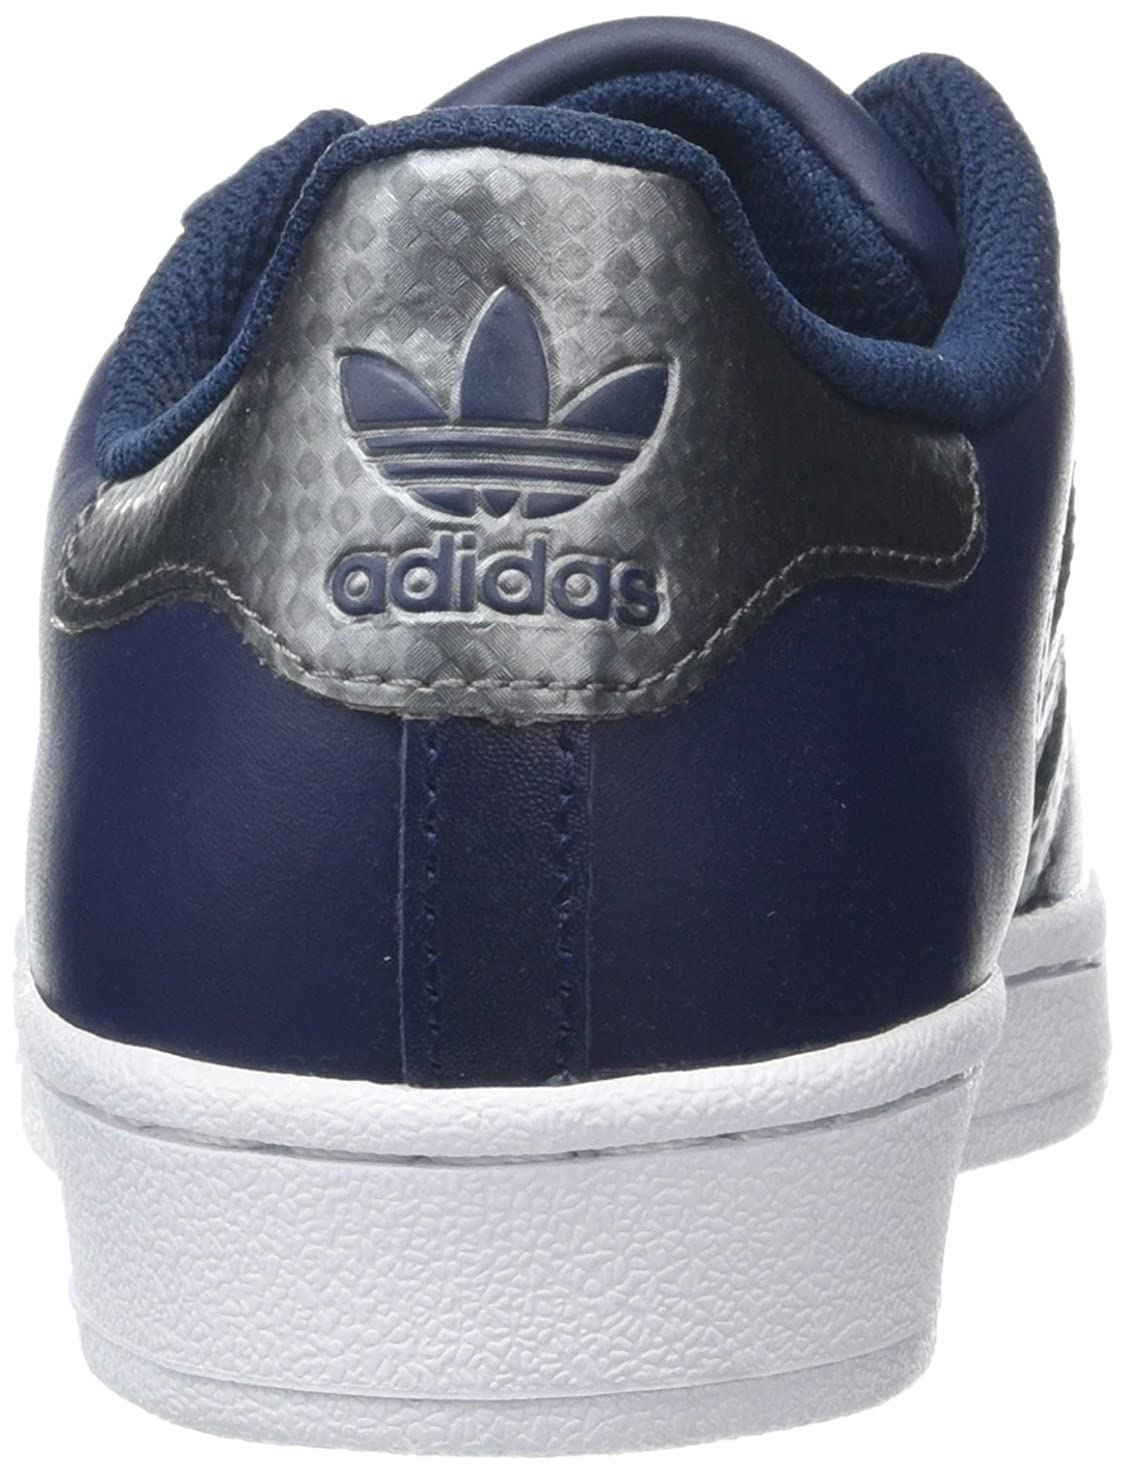 hot sale online 80bd3 26154 Adidas Superstar J - Scarpe Sportive Unisex  MainApps  Amazon.it  Scarpe e  borse